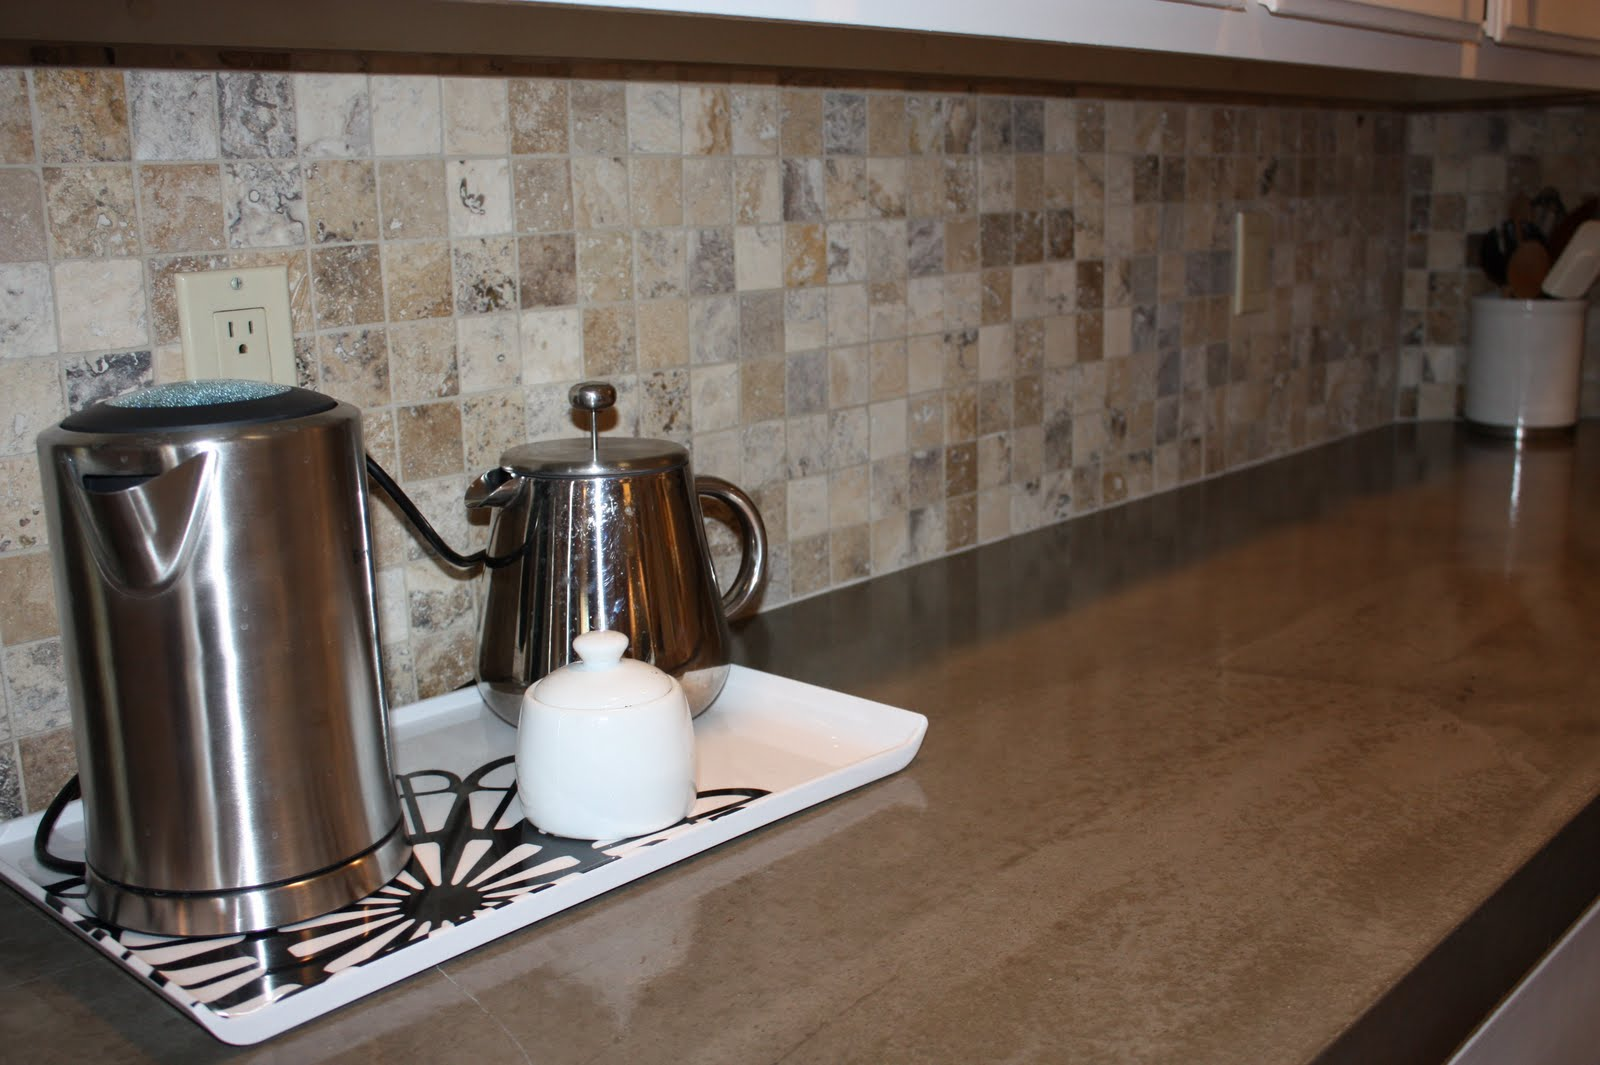 Countertop Dishwasher Craigslist : We decided not to stain this countertop, we just left the concrete as ...